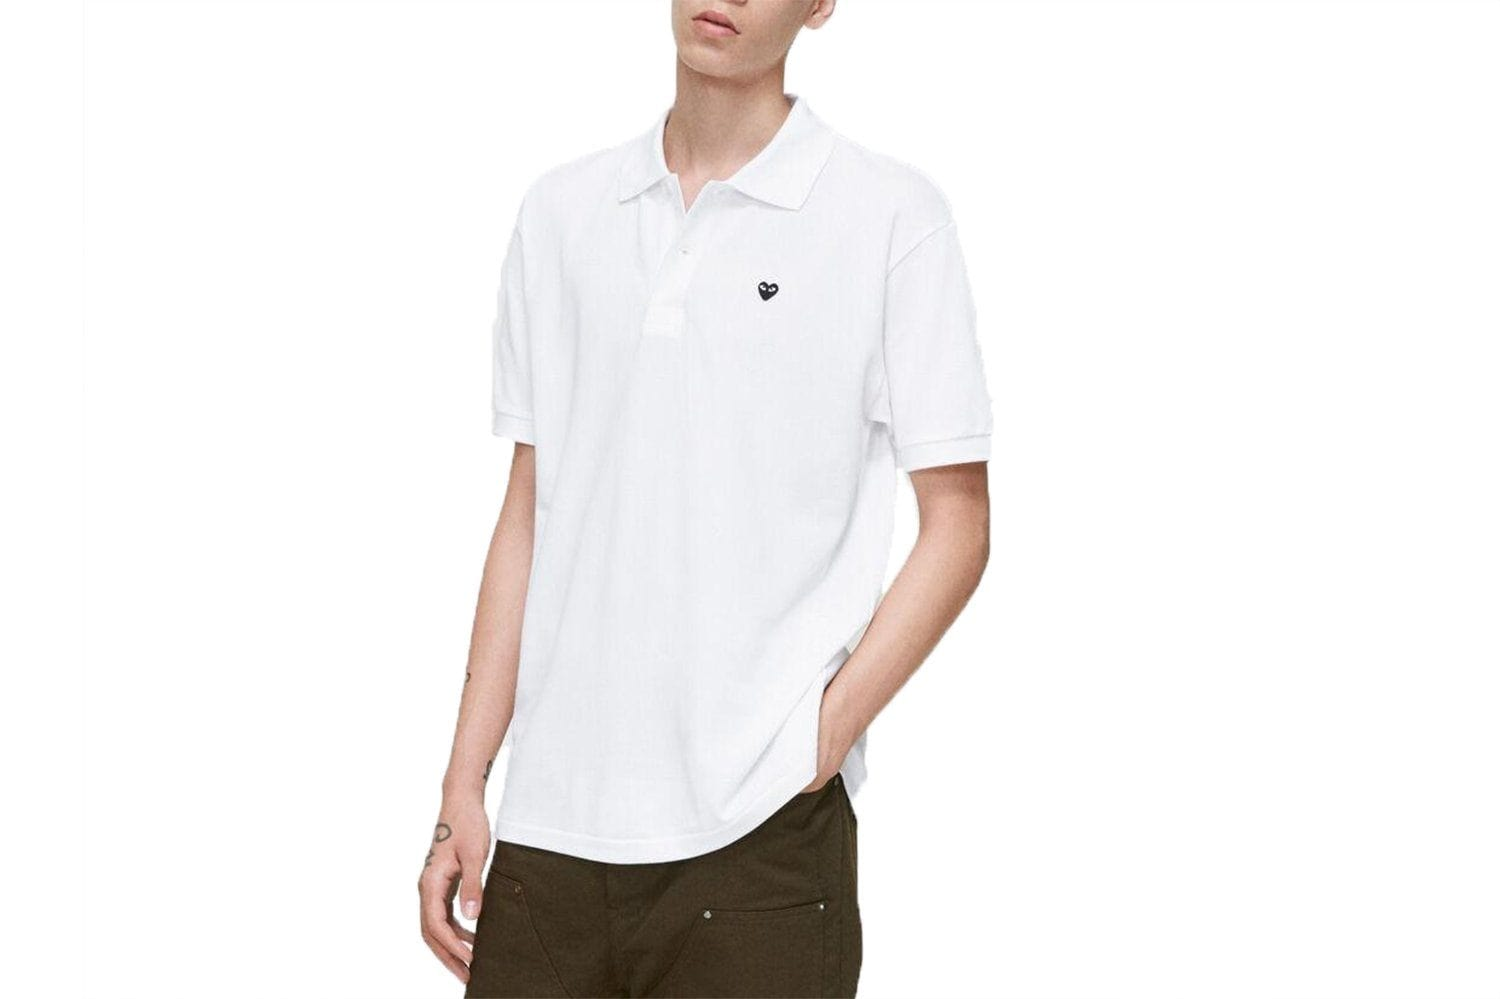 SMALL BLACK HEART WHITE POLO - AZT066 MENS SOFTGOODS COMME DES GARCONS